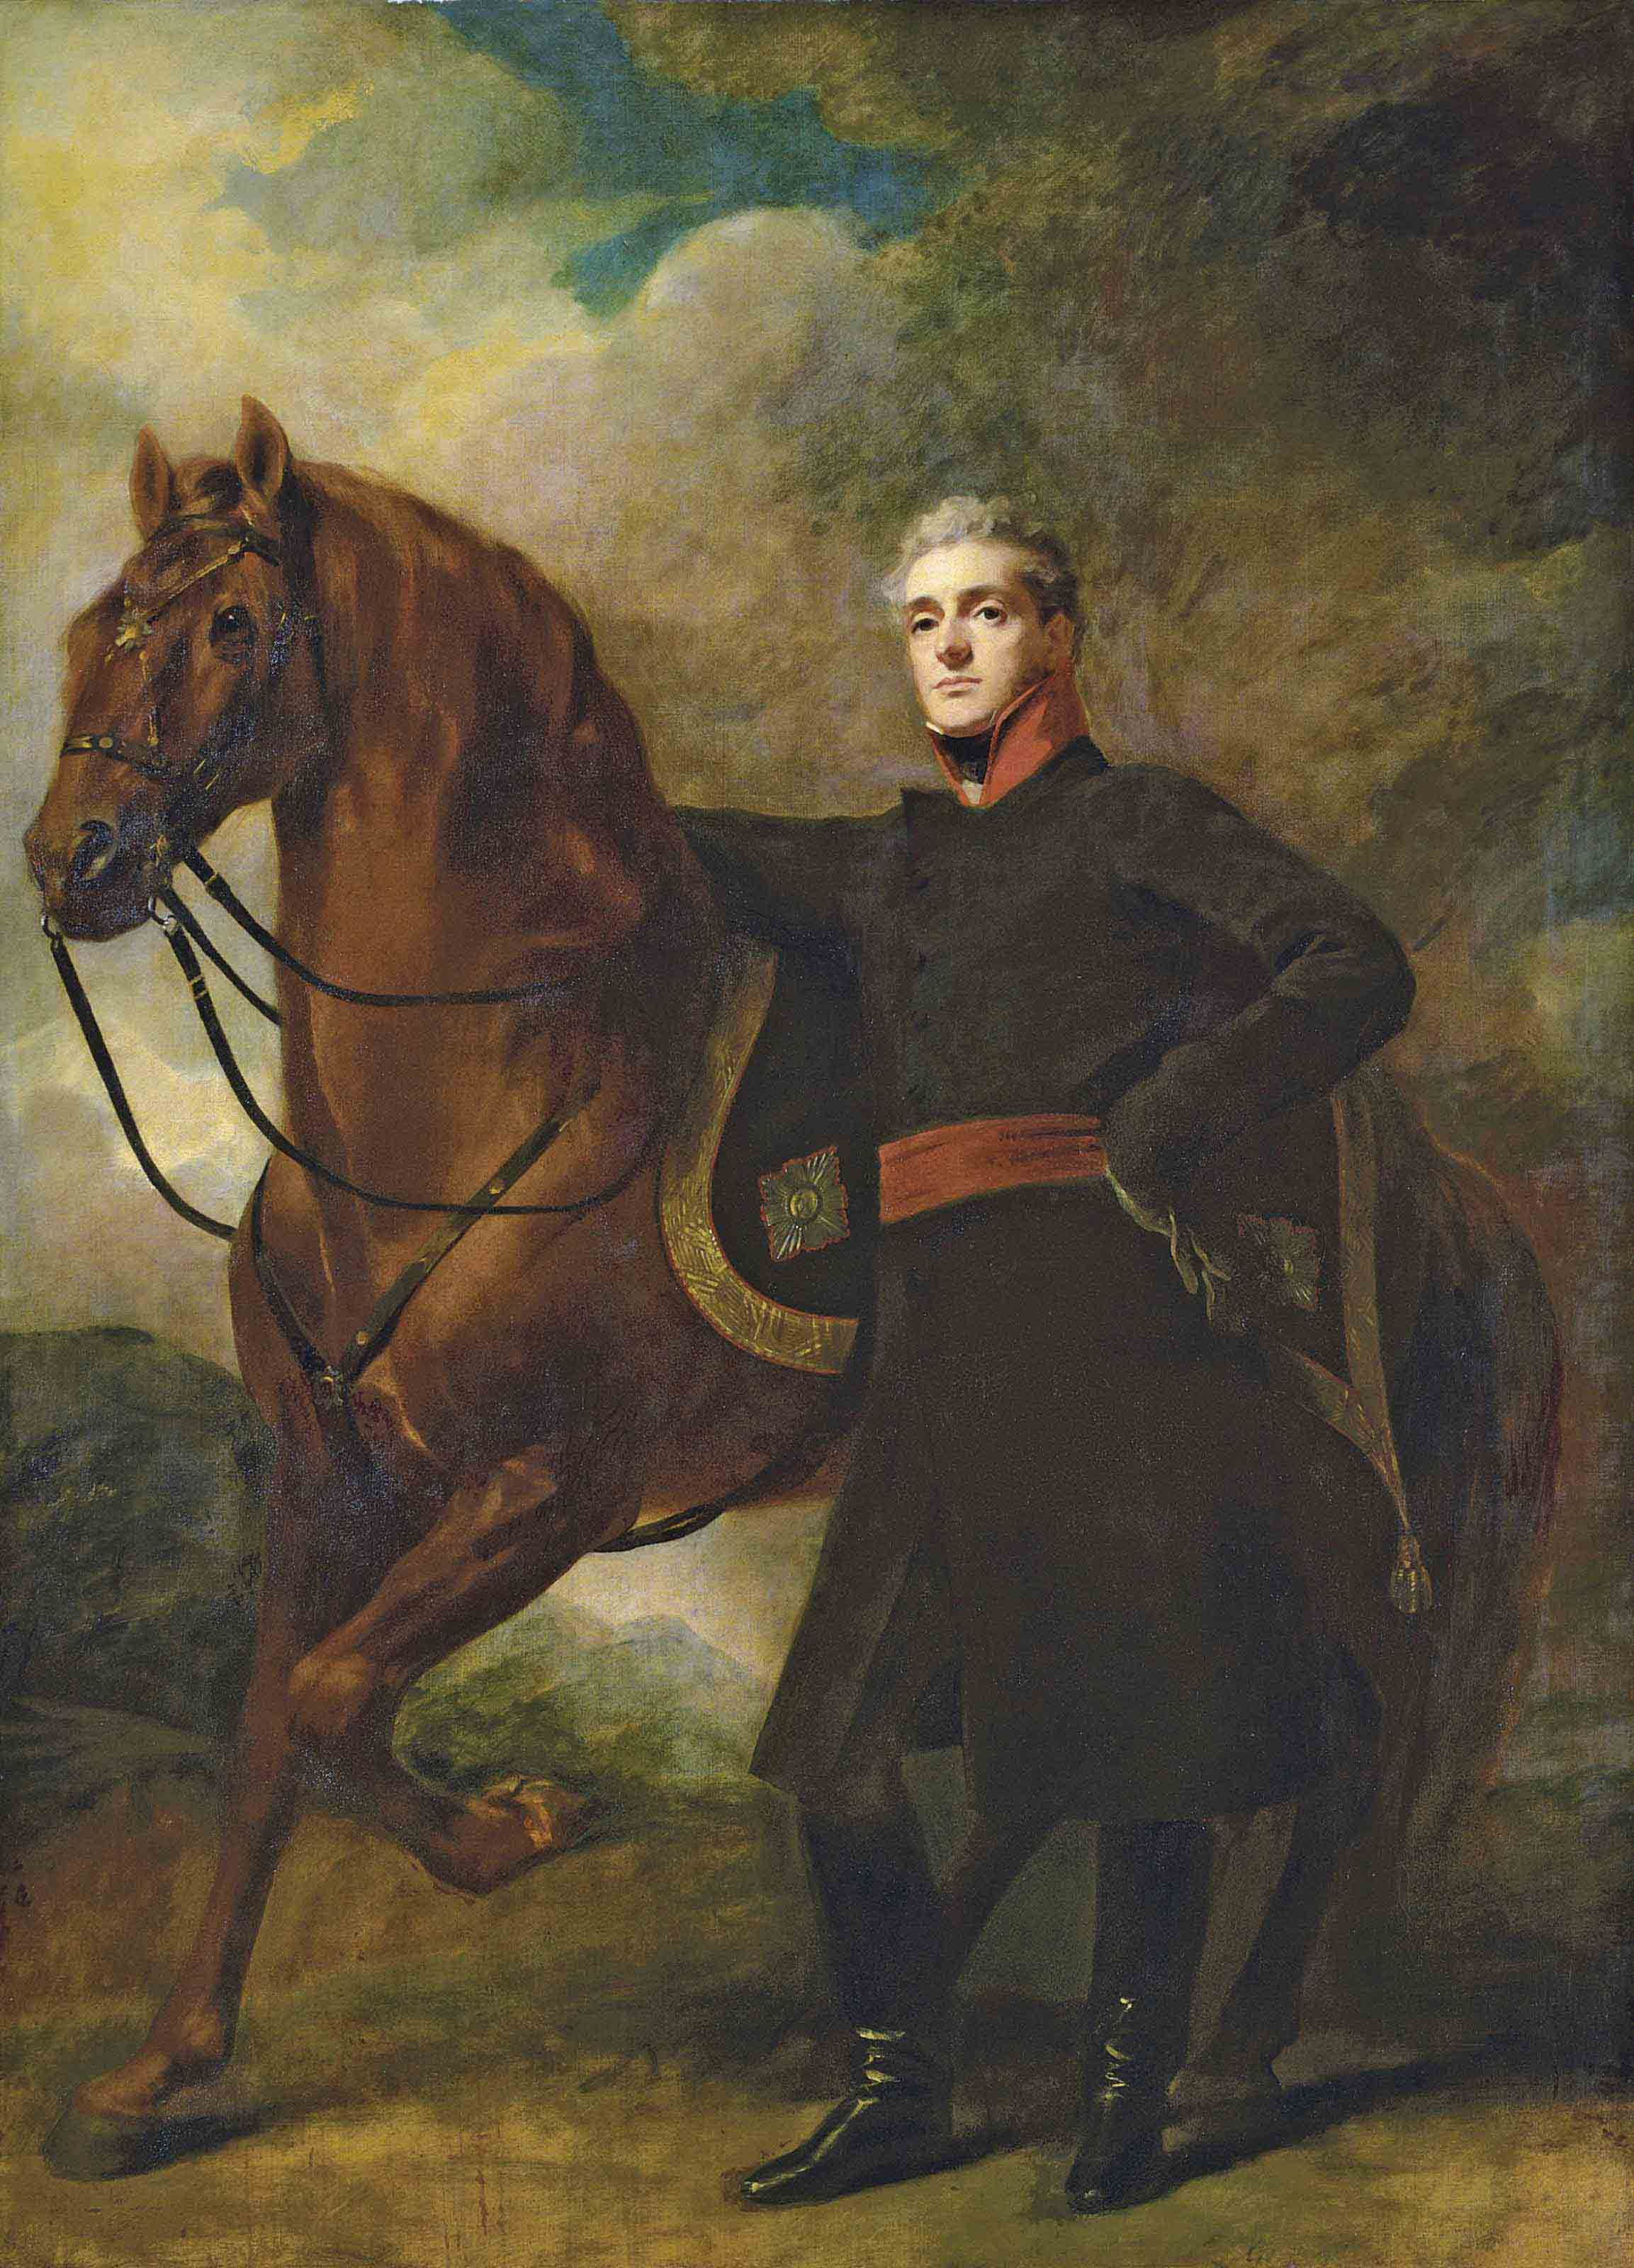 Portrait of Alexander Douglas-Hamilton, 10th Duke of Hamilton and 7th Duke of Brandon (1767-1852), full-length, in uniform, with his Arabian charger, in a landscape